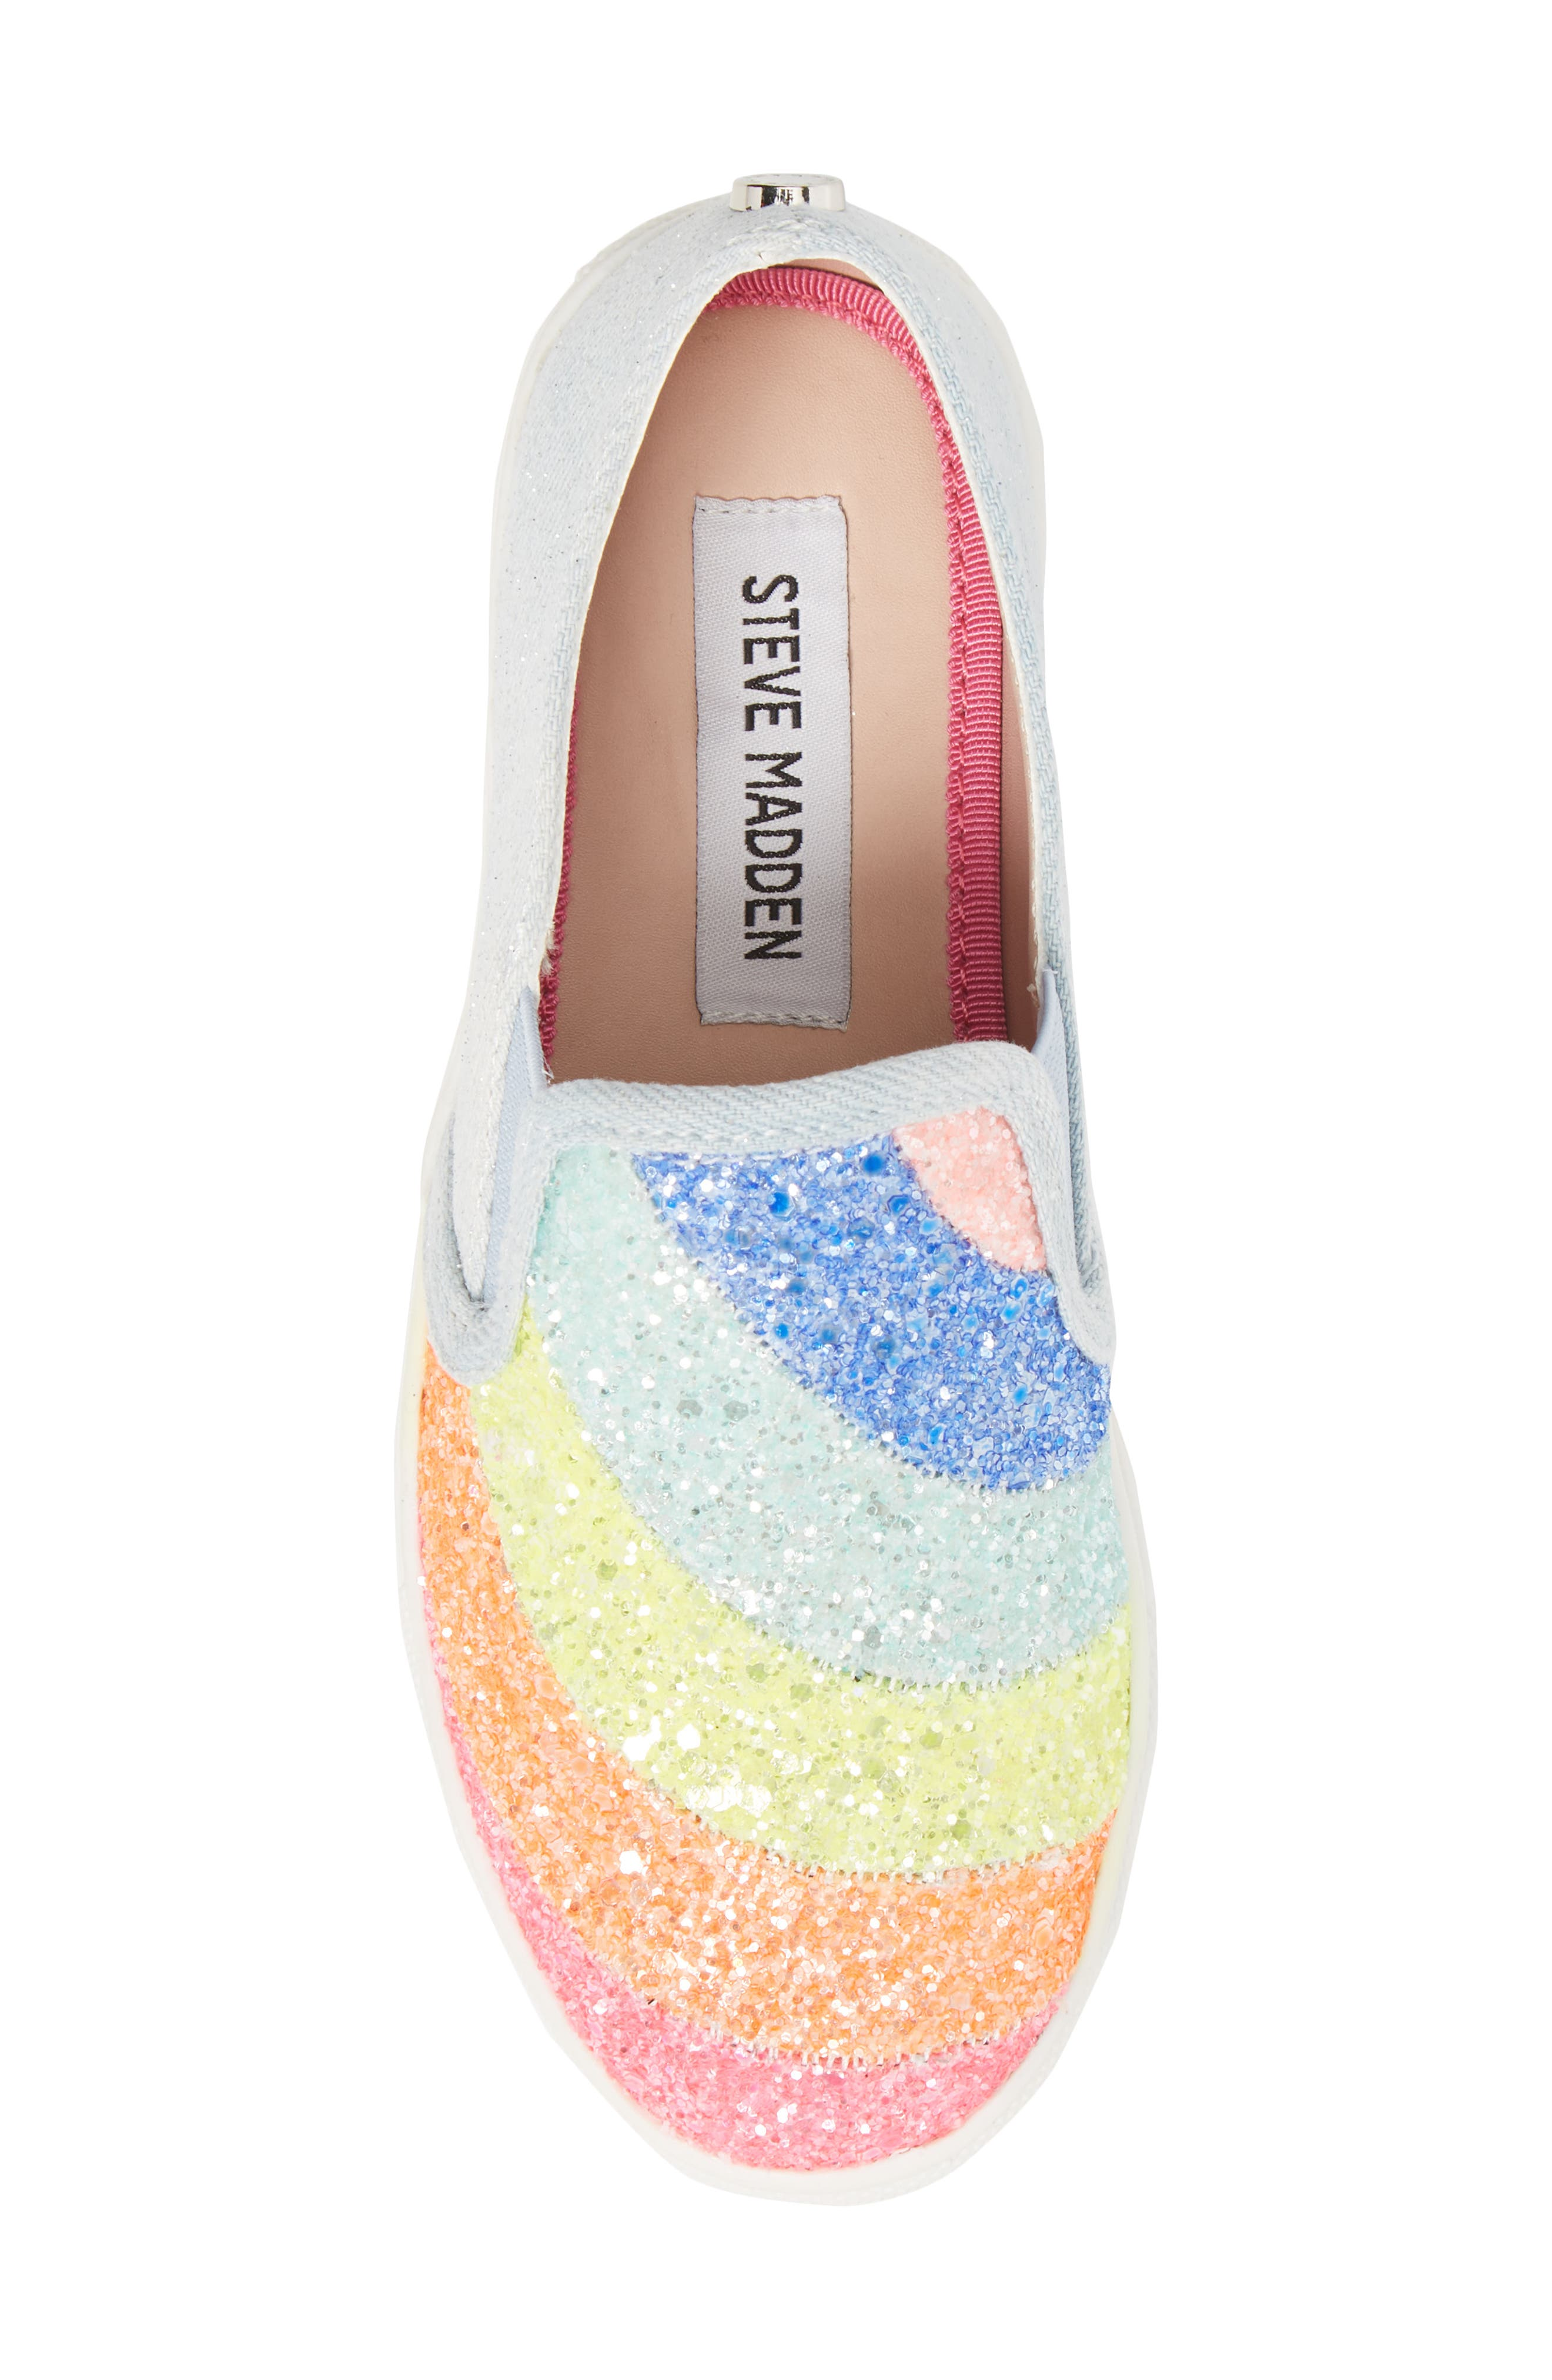 JWISH Rainbow Slip-On Sneaker,                             Alternate thumbnail 5, color,                             650